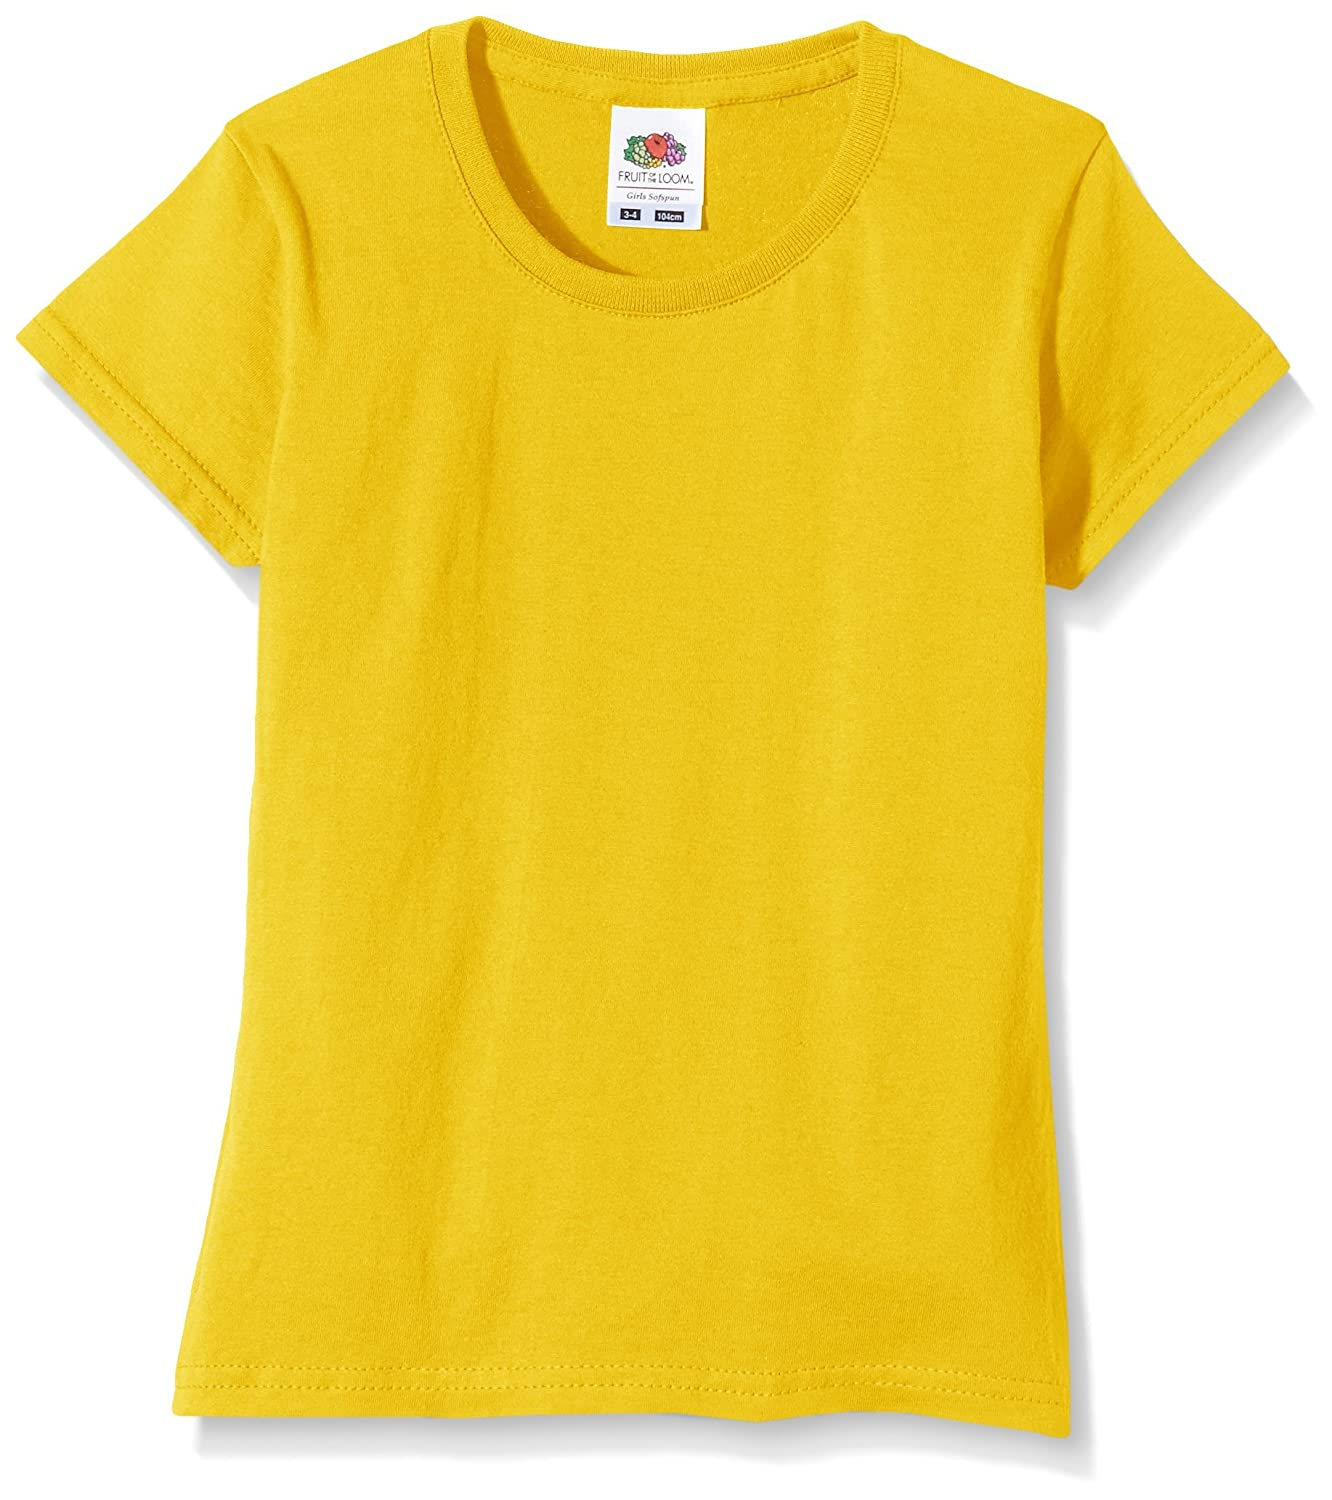 Fruit of the Loom Girls Softspun T-Shirt - 10 Colours/Ages 3-15 Years